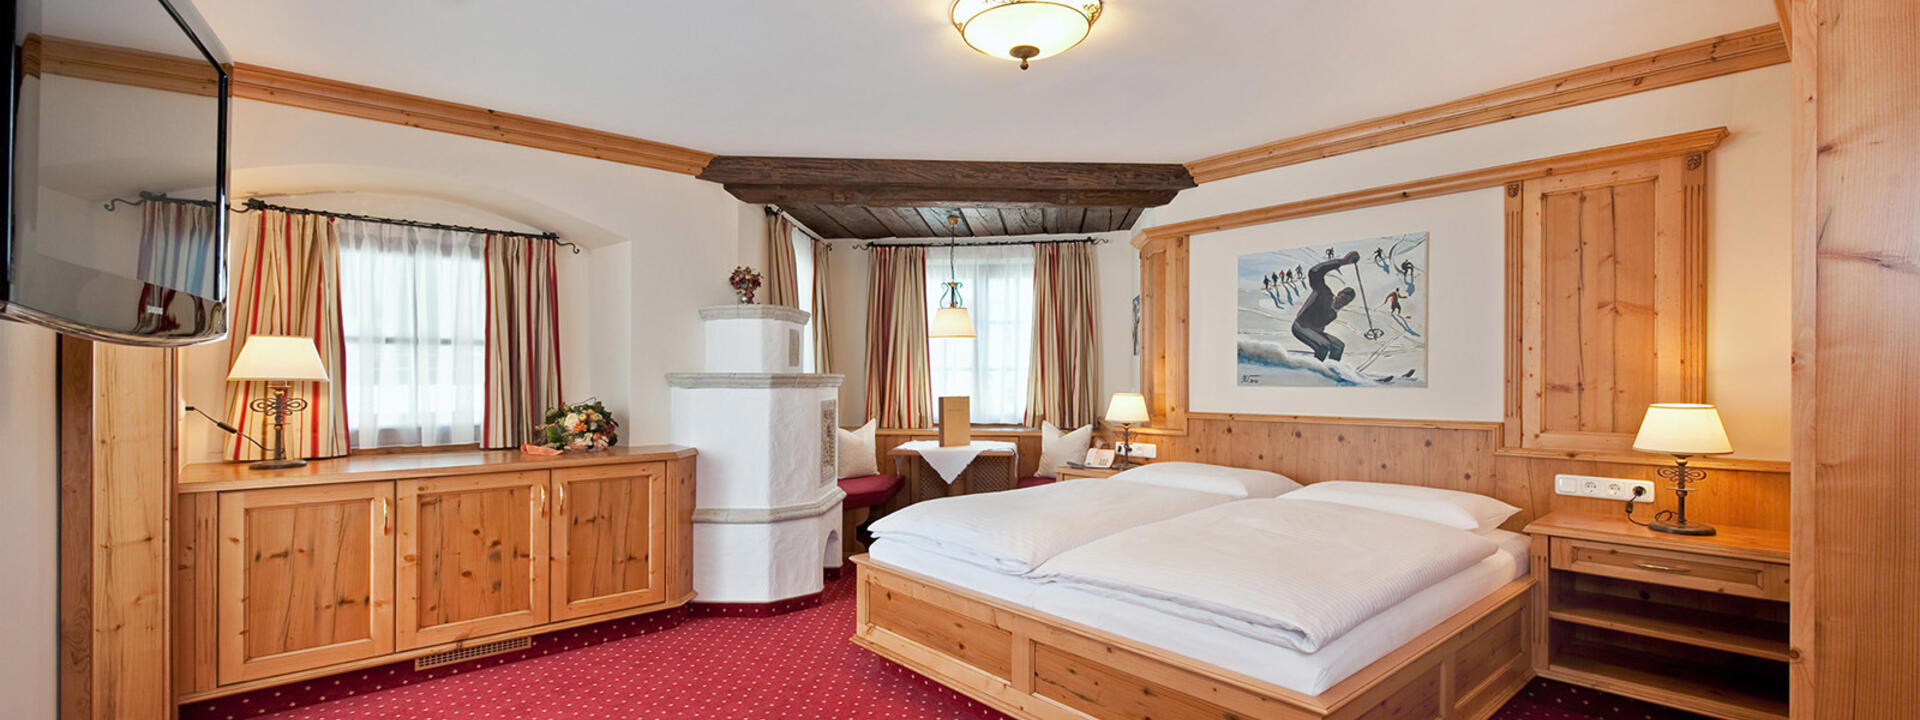 Double Room at Gasthof Eggerwirt Hotel in Kitzbühel, Austria